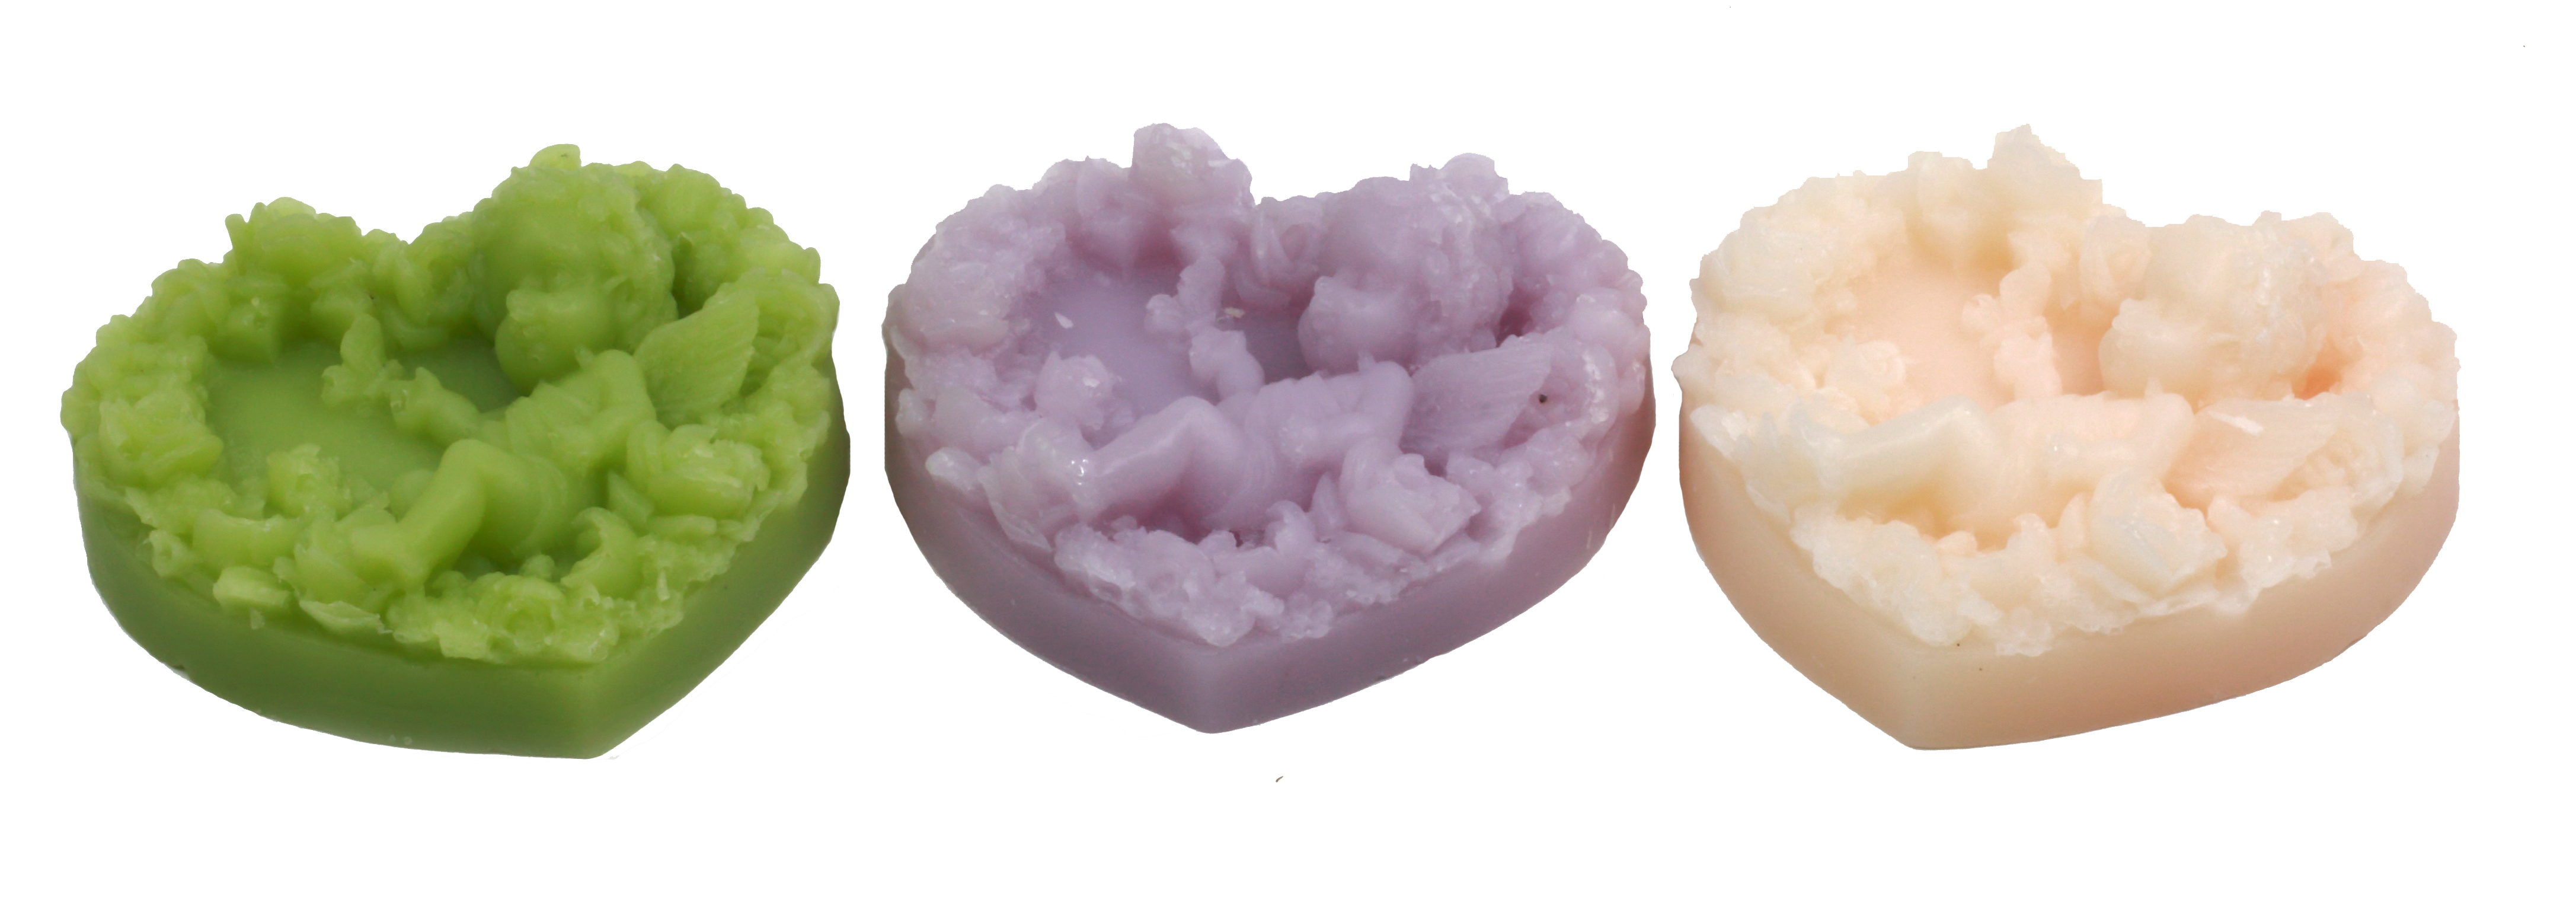 NLW-08 - 60g MP Angel Heart Shape Soap (Pastel Color)